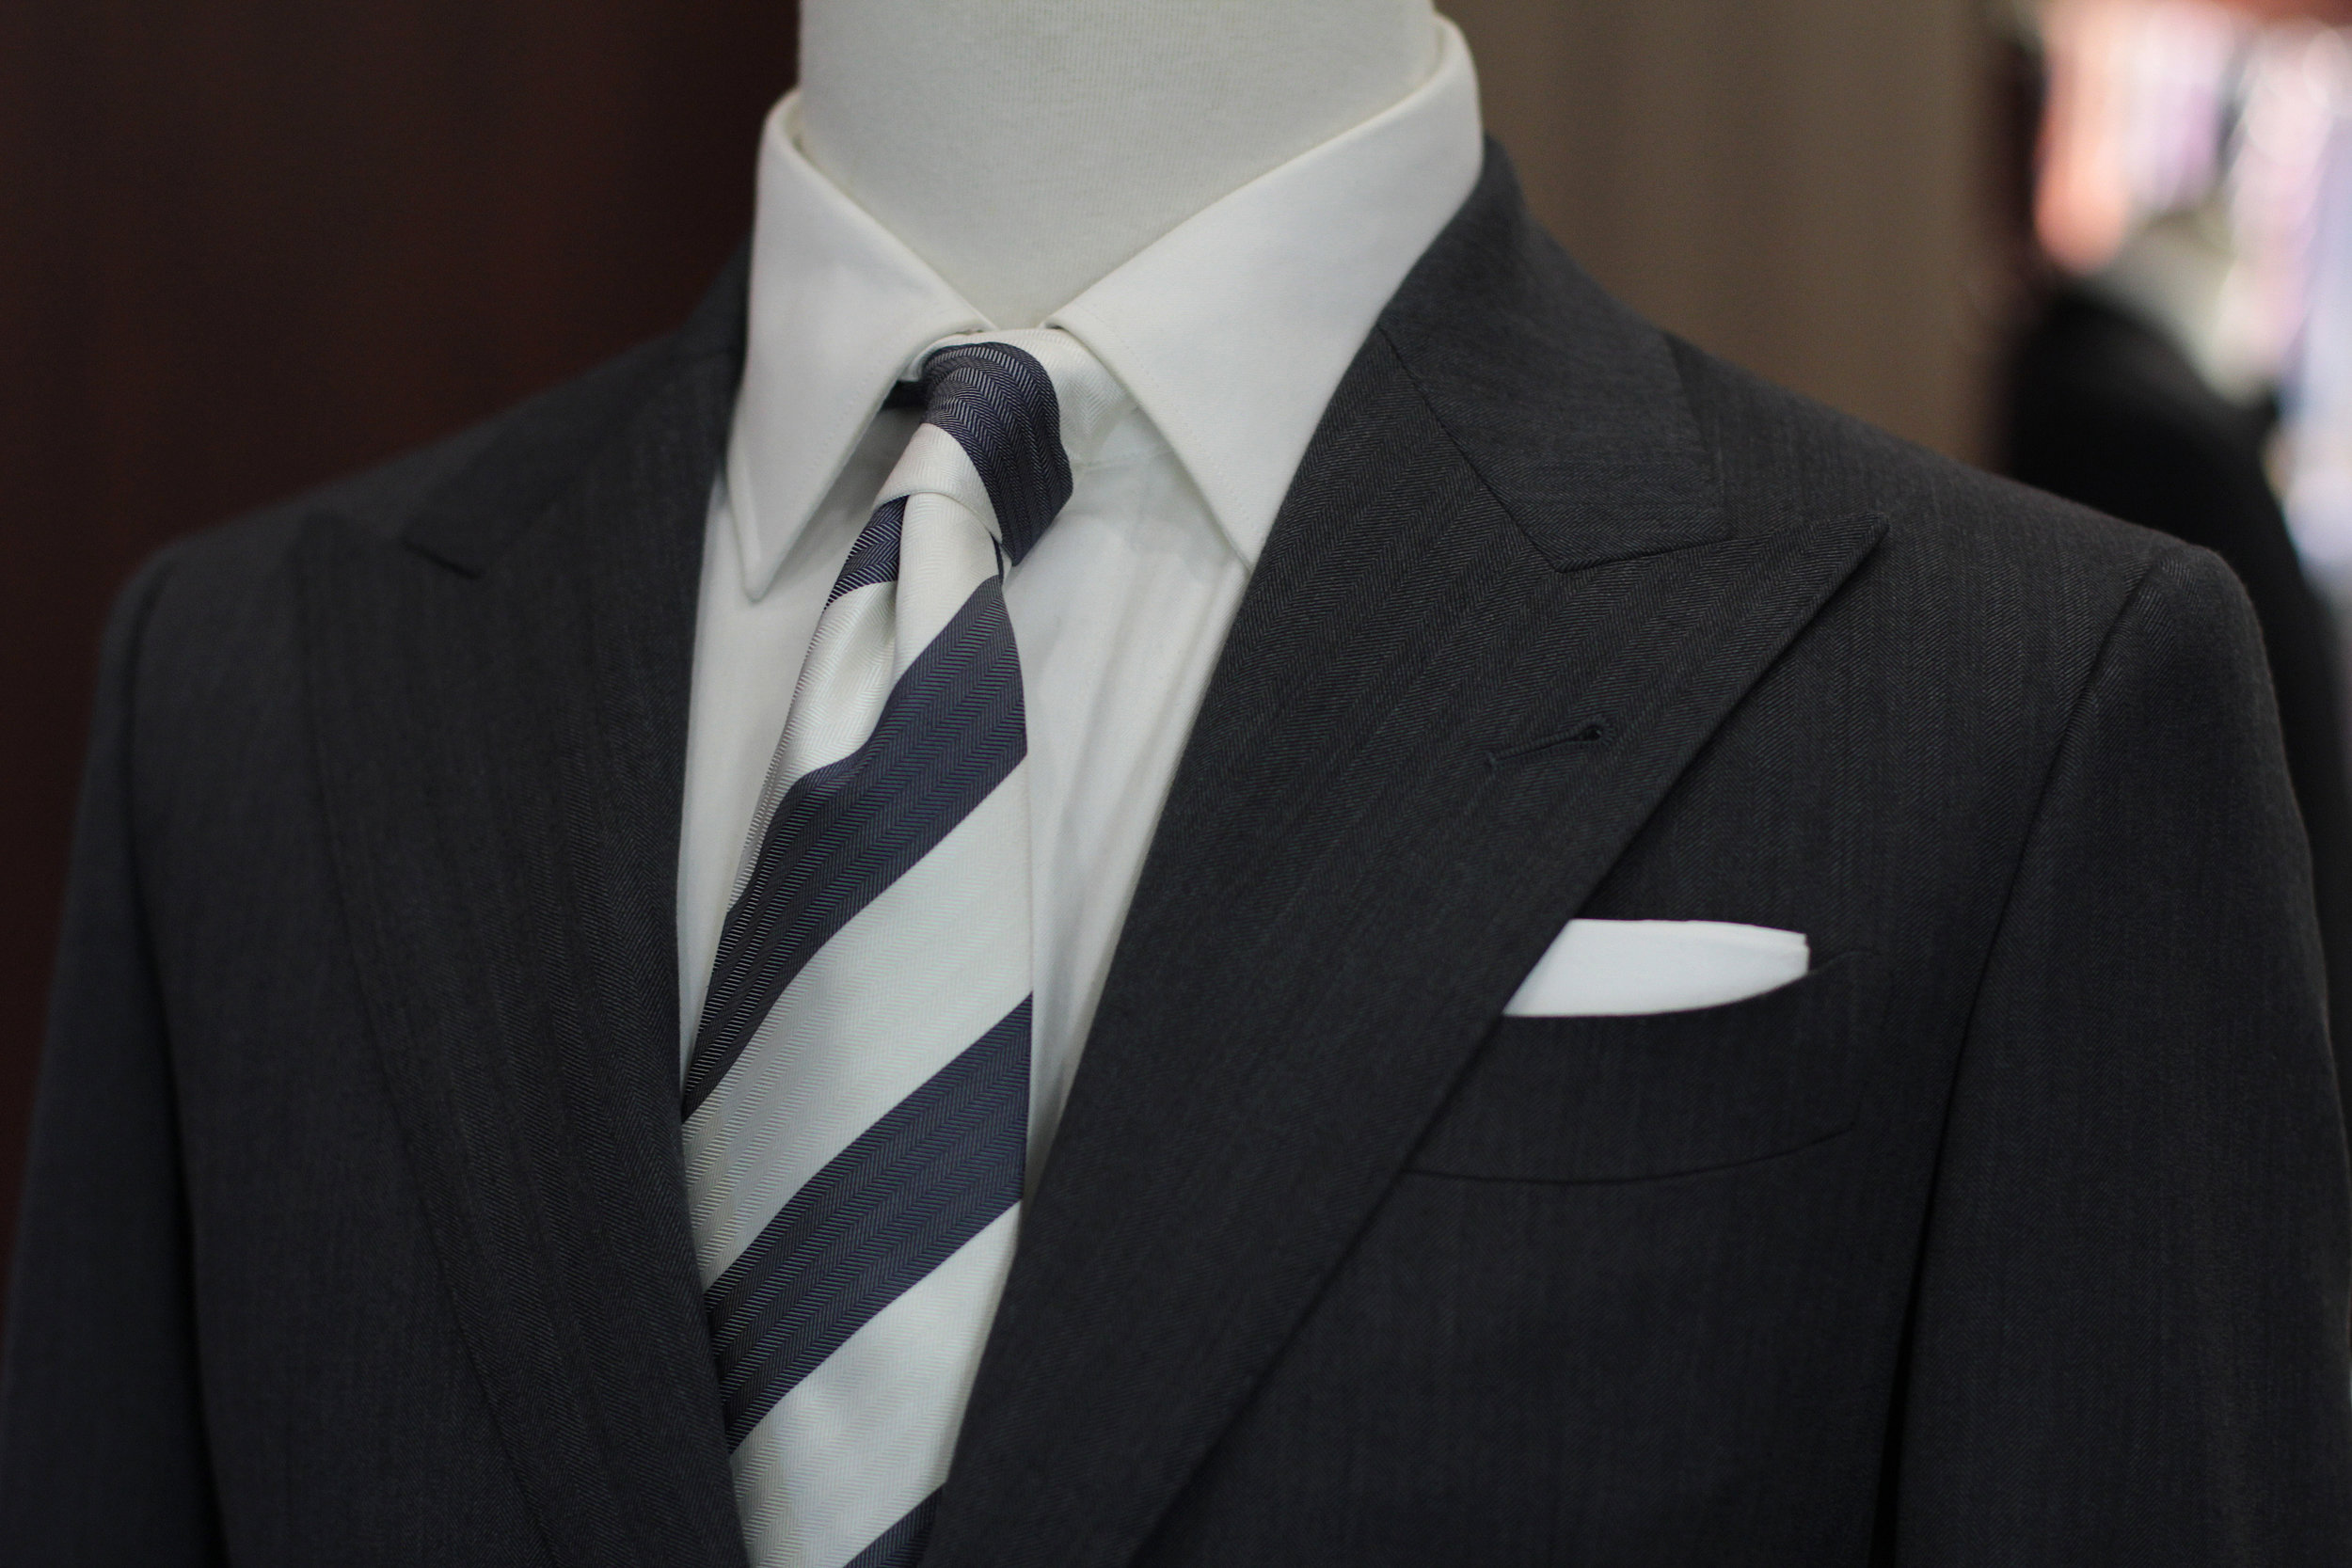 Mr Seal   Made Suits Singapore tailor made to measure side view Peak Lapel.JPG